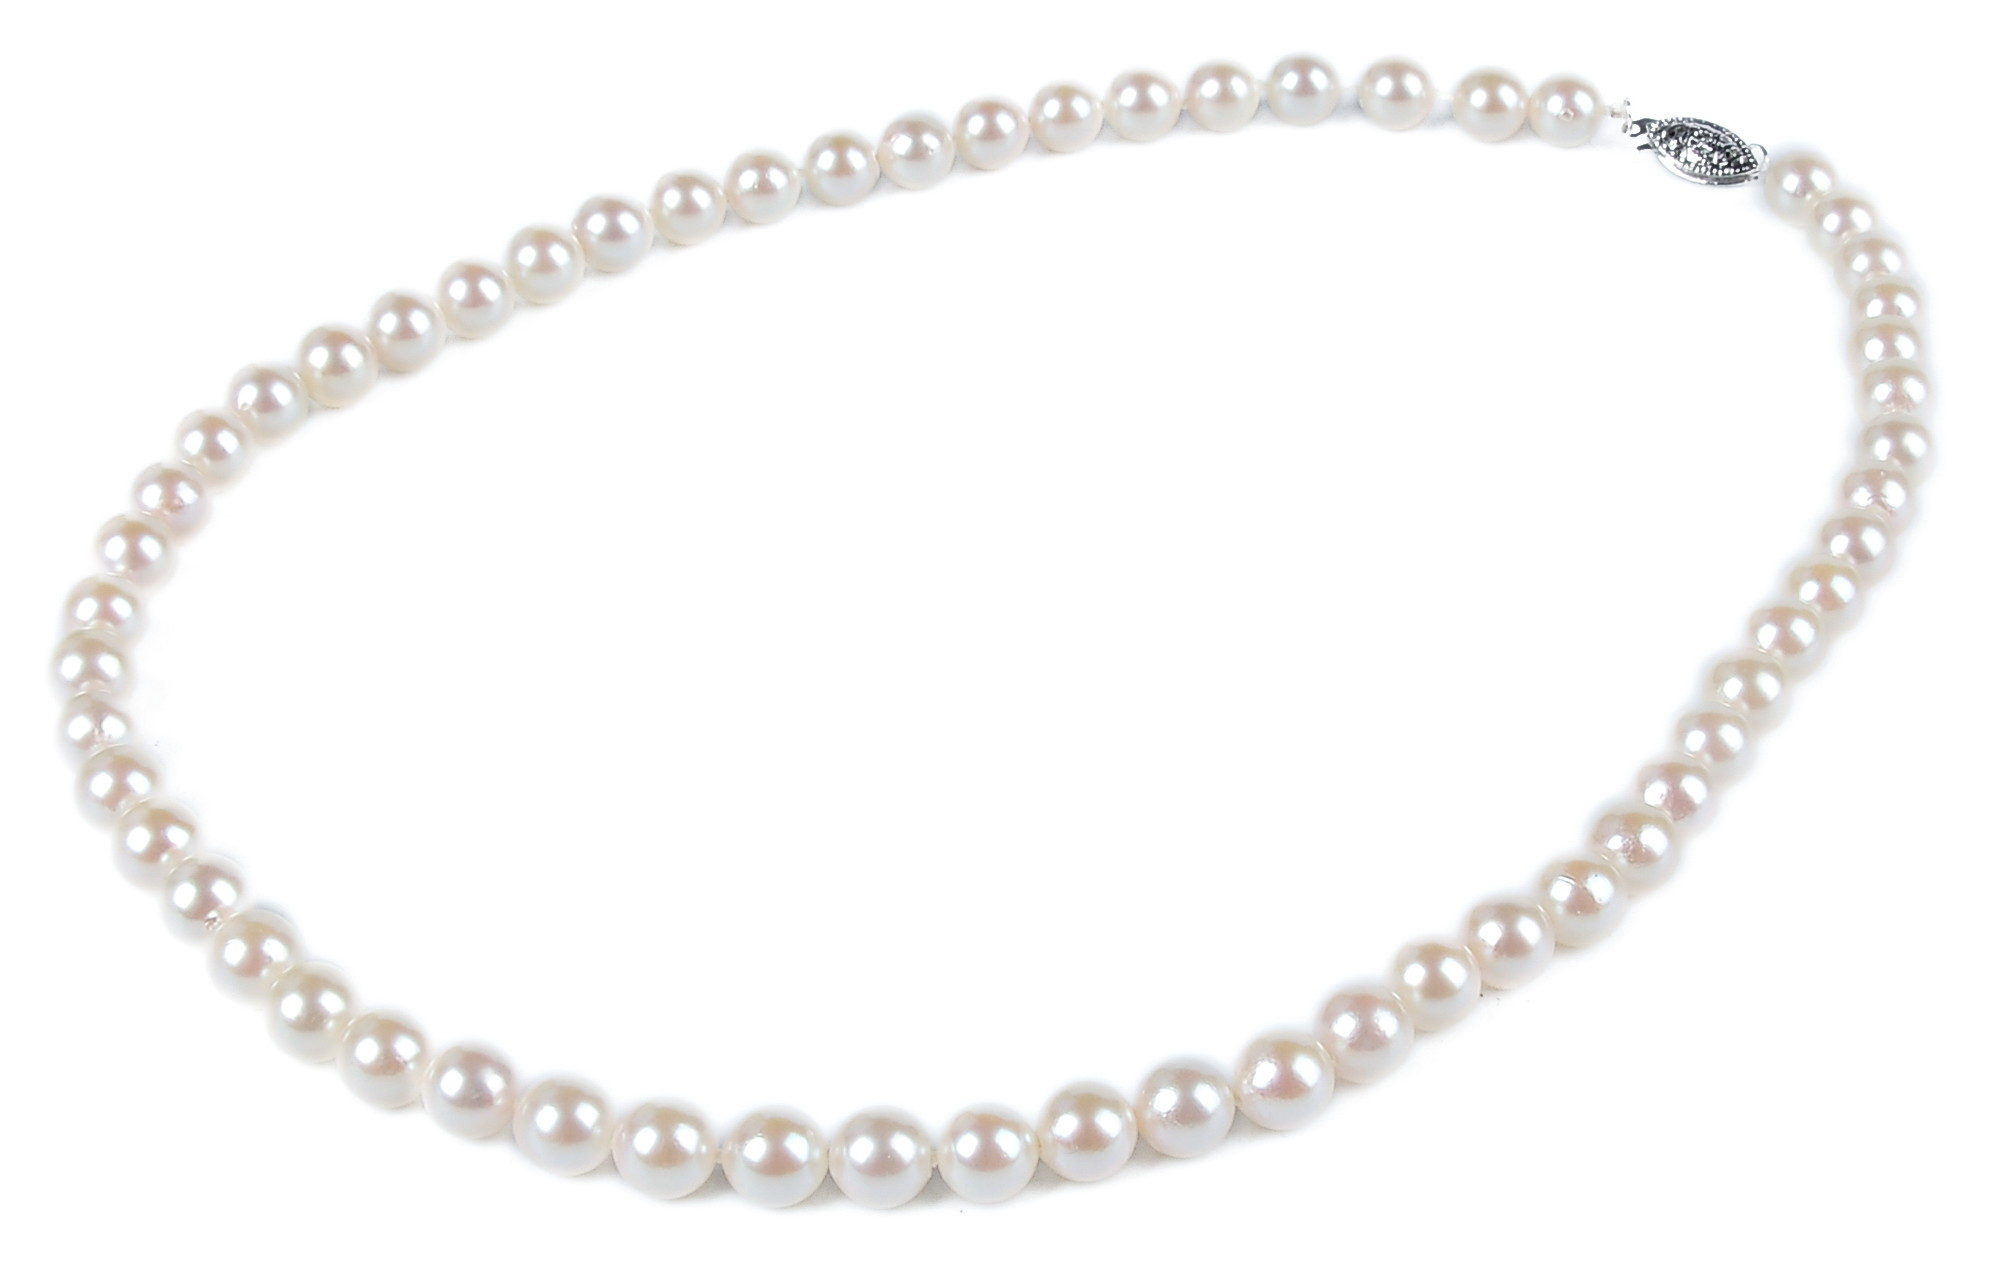 7mm AAA+ Gem Quality Akoya White Pearl Necklace -nk52